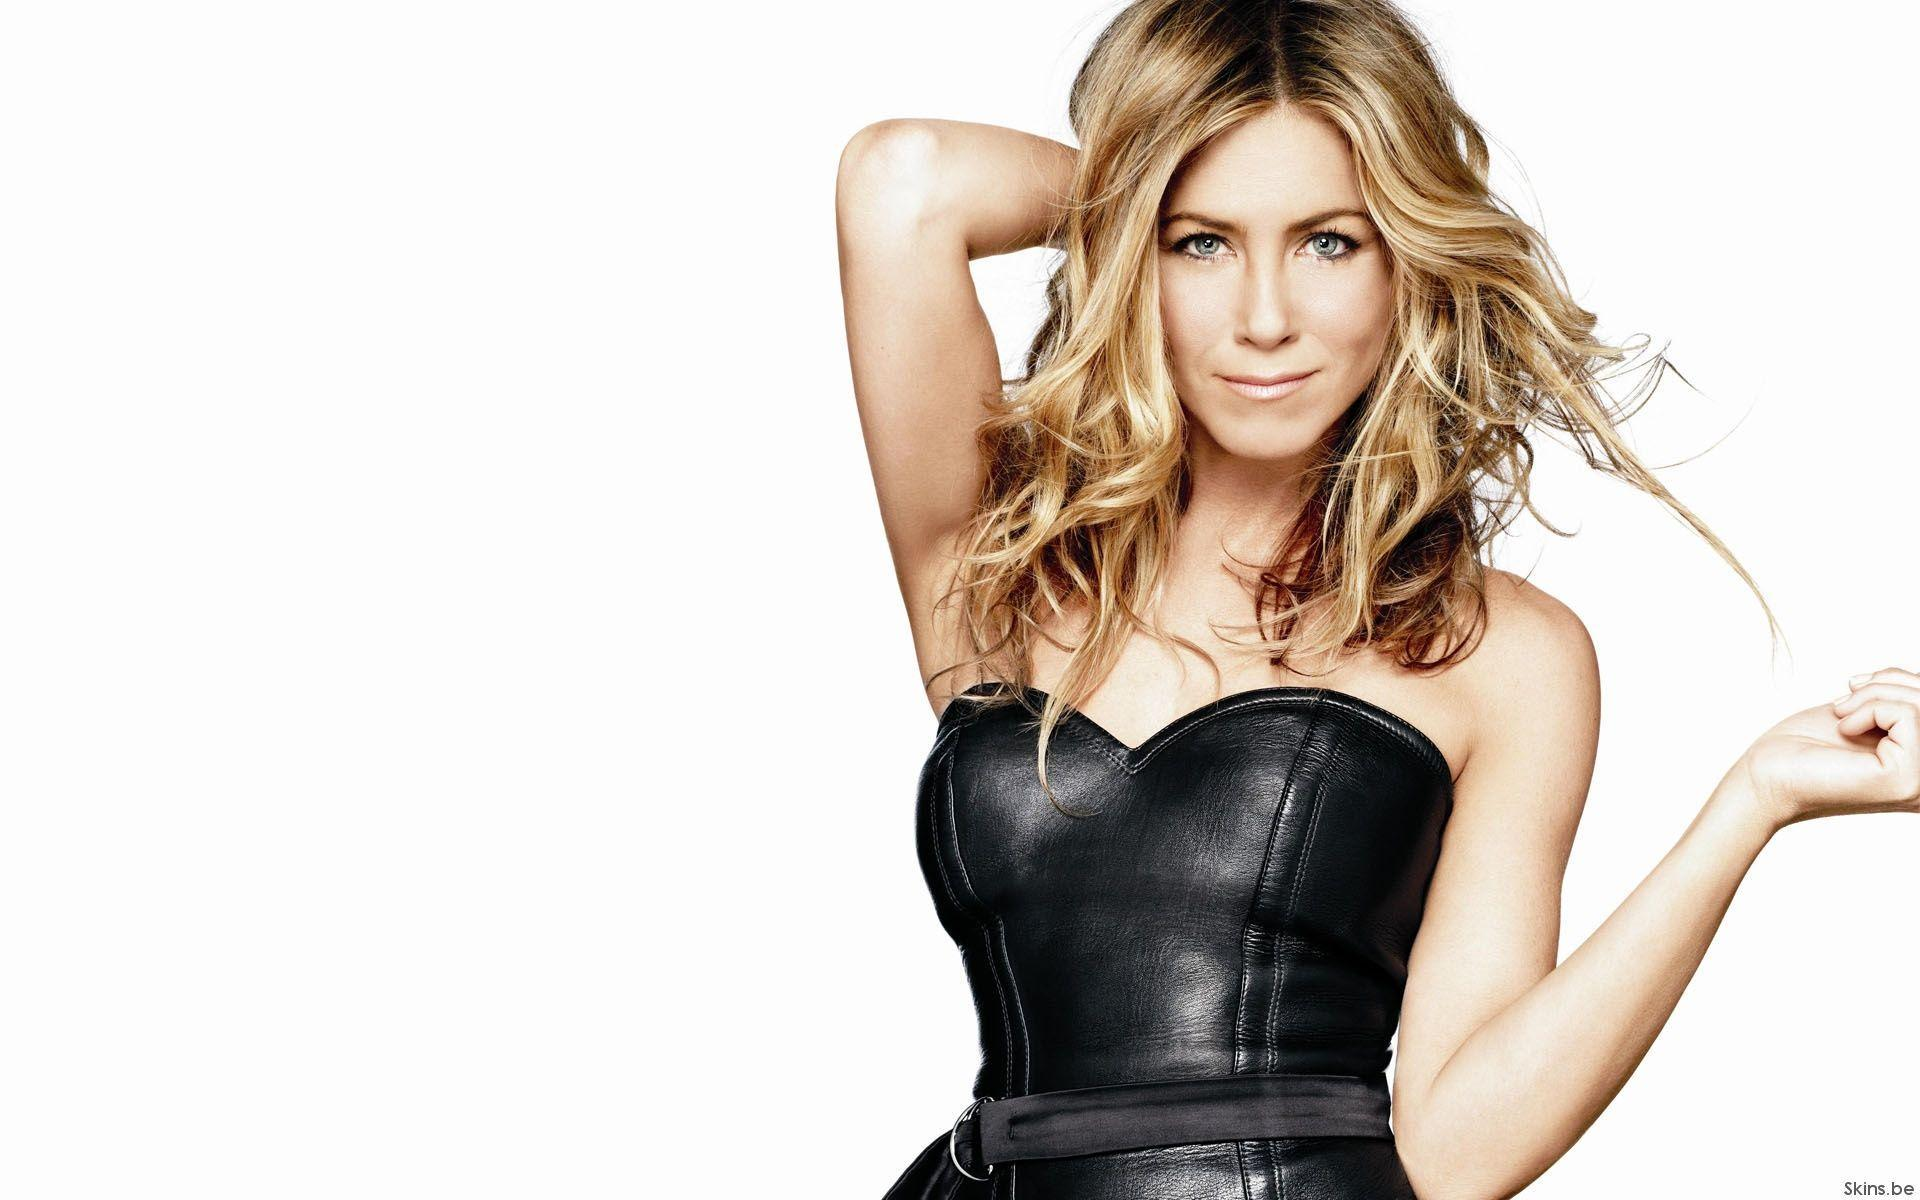 Pictures of Jennifer Aniston HD, 1920x1200, 24/11/2017 for desktop ...